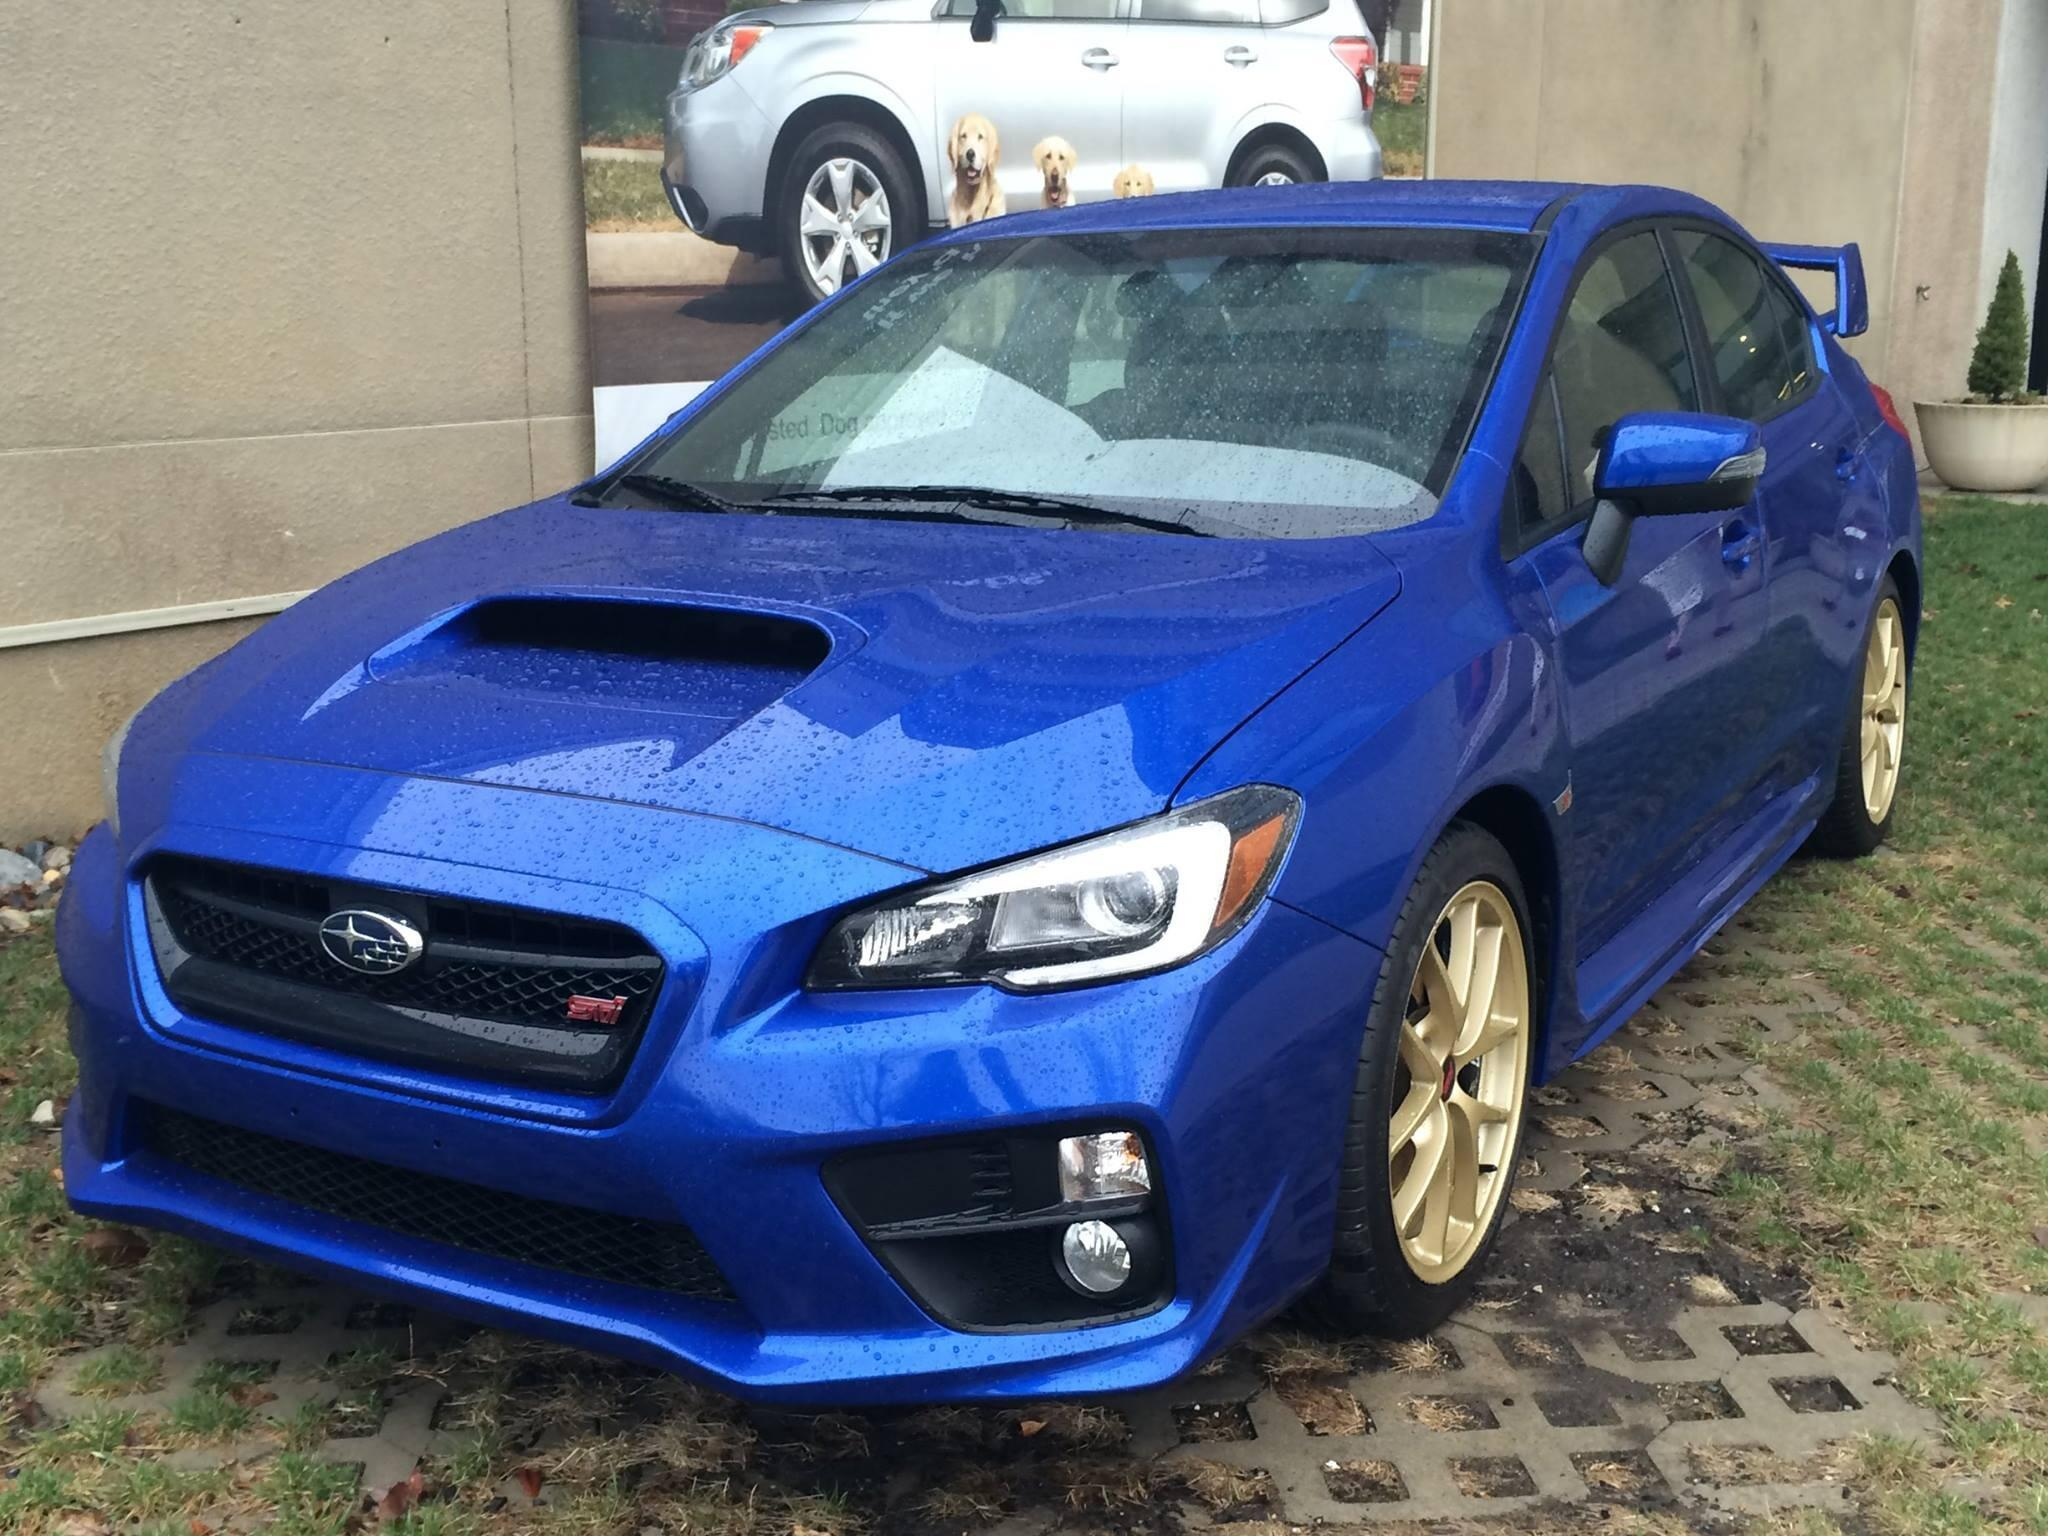 April showers bring May flowers, but they also bring the 2015 WRX STI Launch Edition to our Headquarters. http://t.co/IY6ELP5N1Q